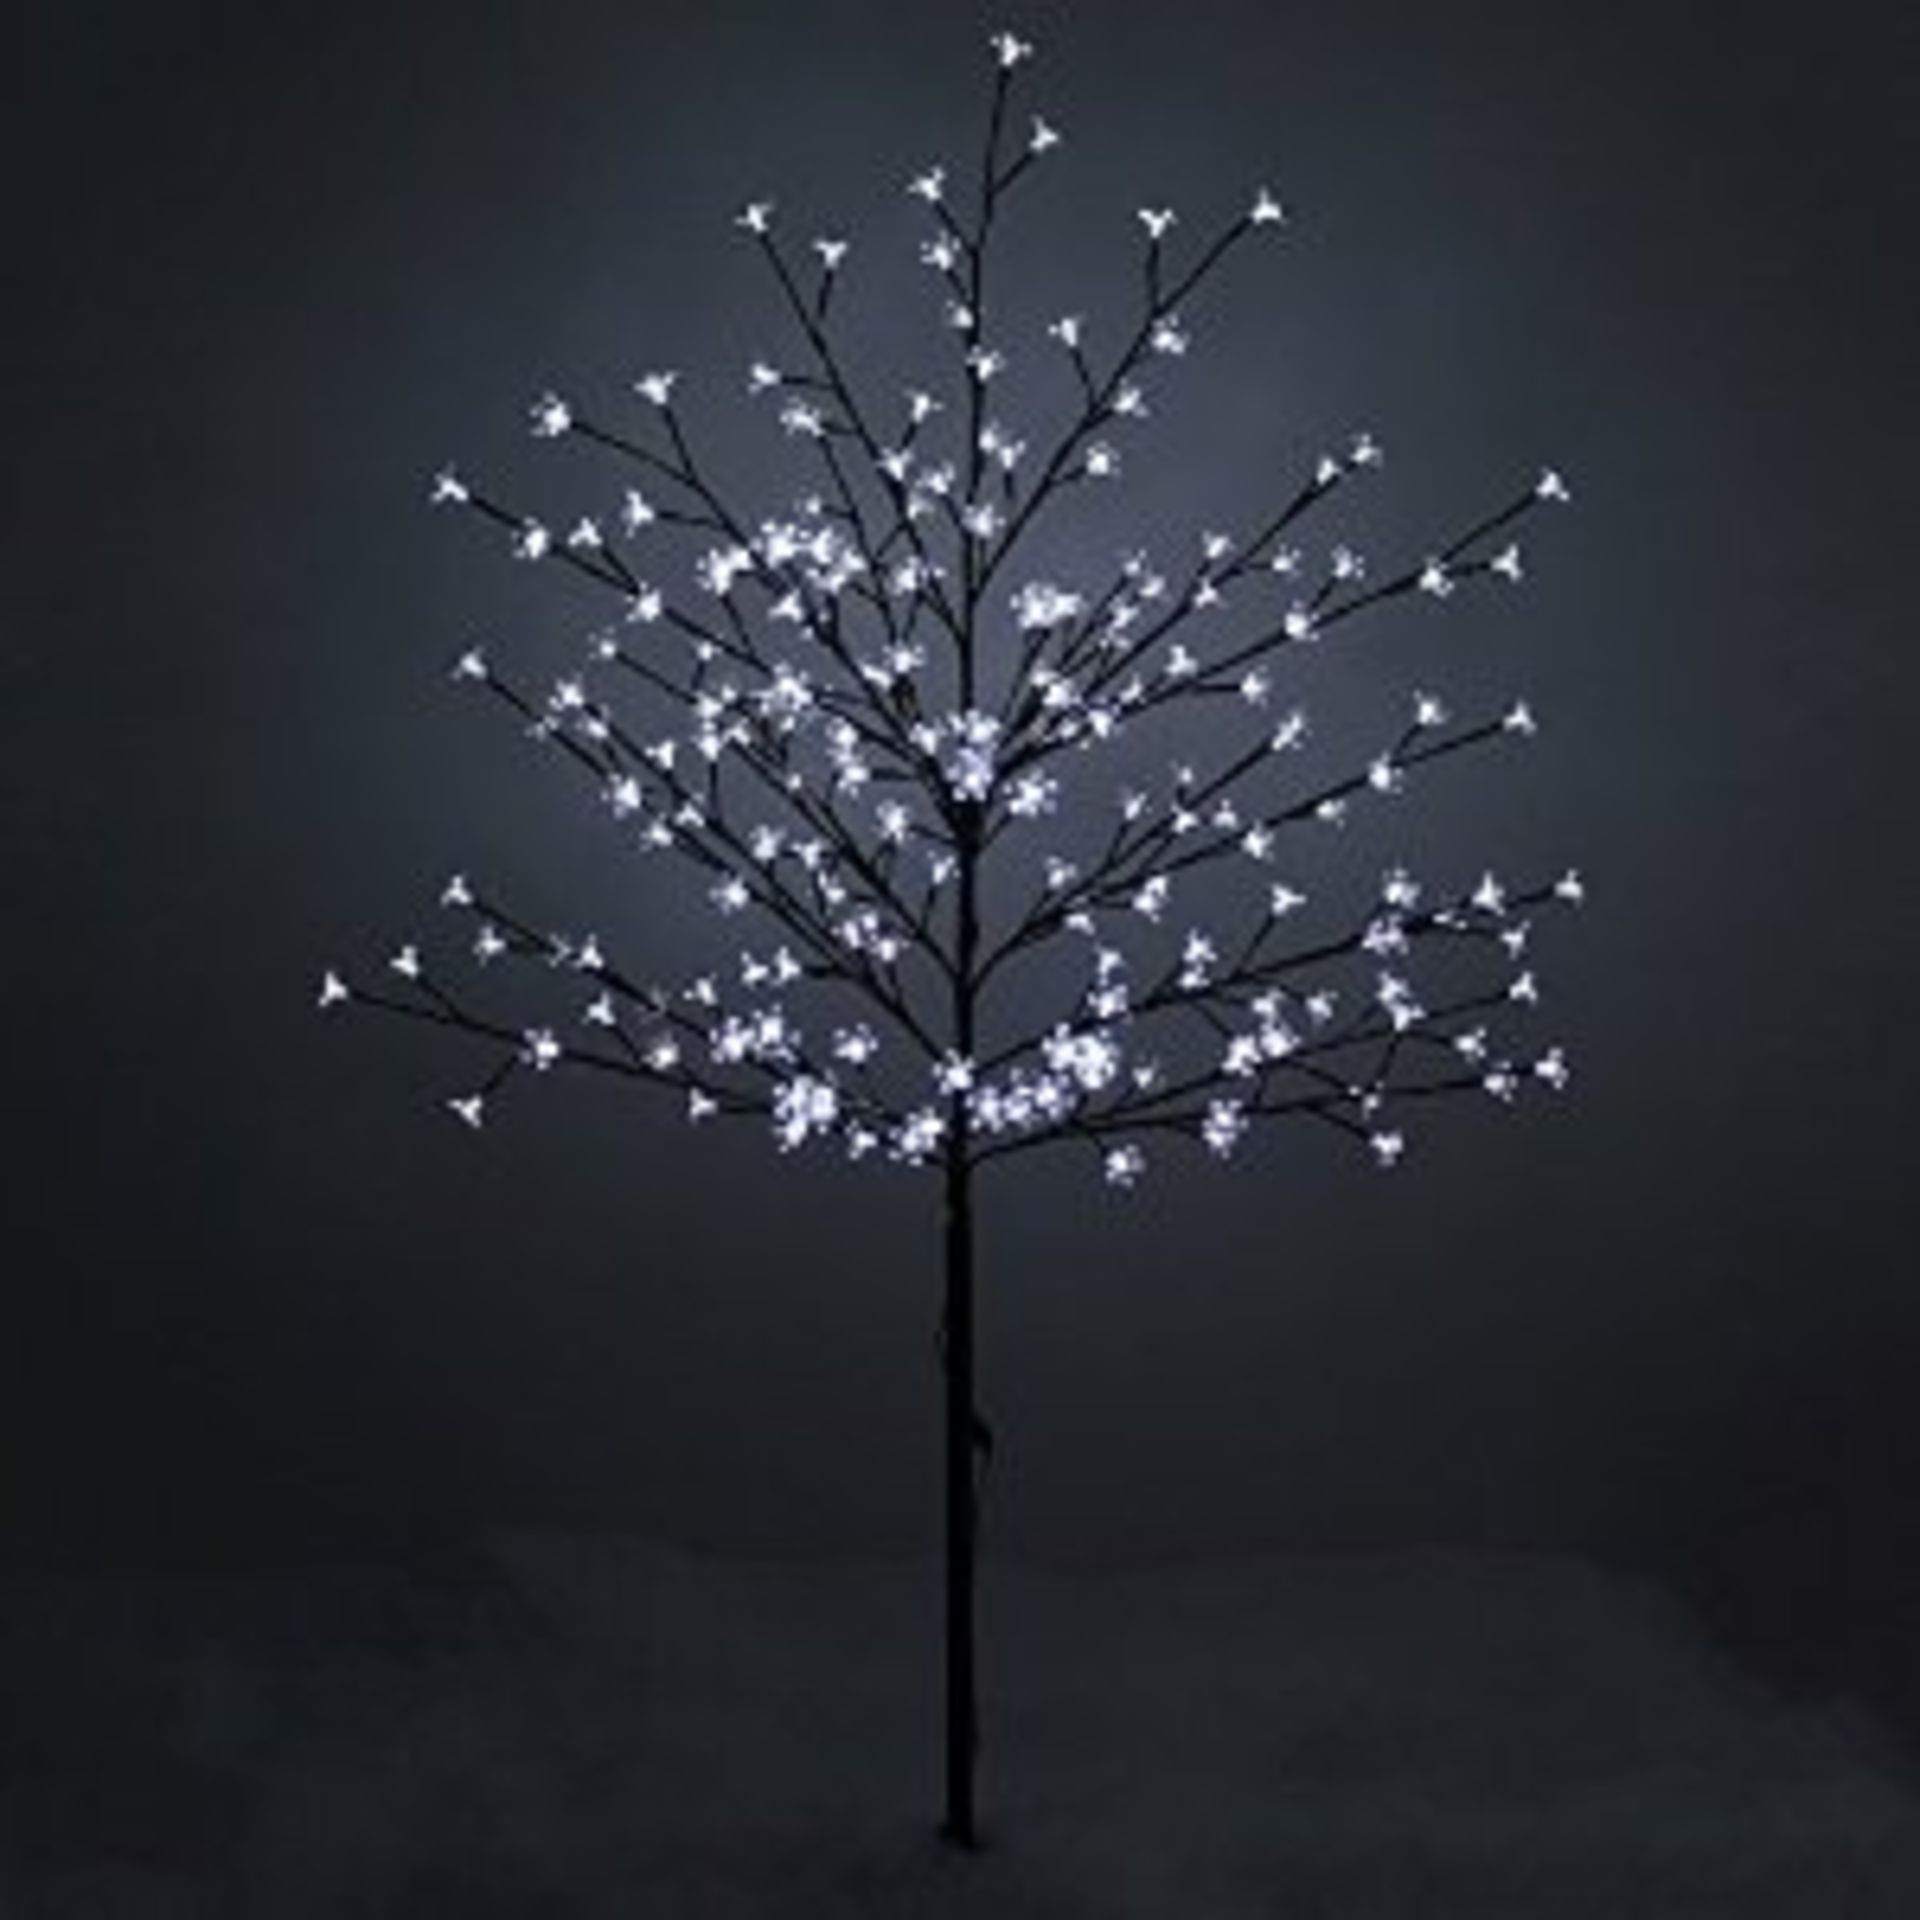 Lot 11960 - V Brand New 150cm Snow White LED Blossom Tree For Indoor And Outdoor Use RRP £54.99